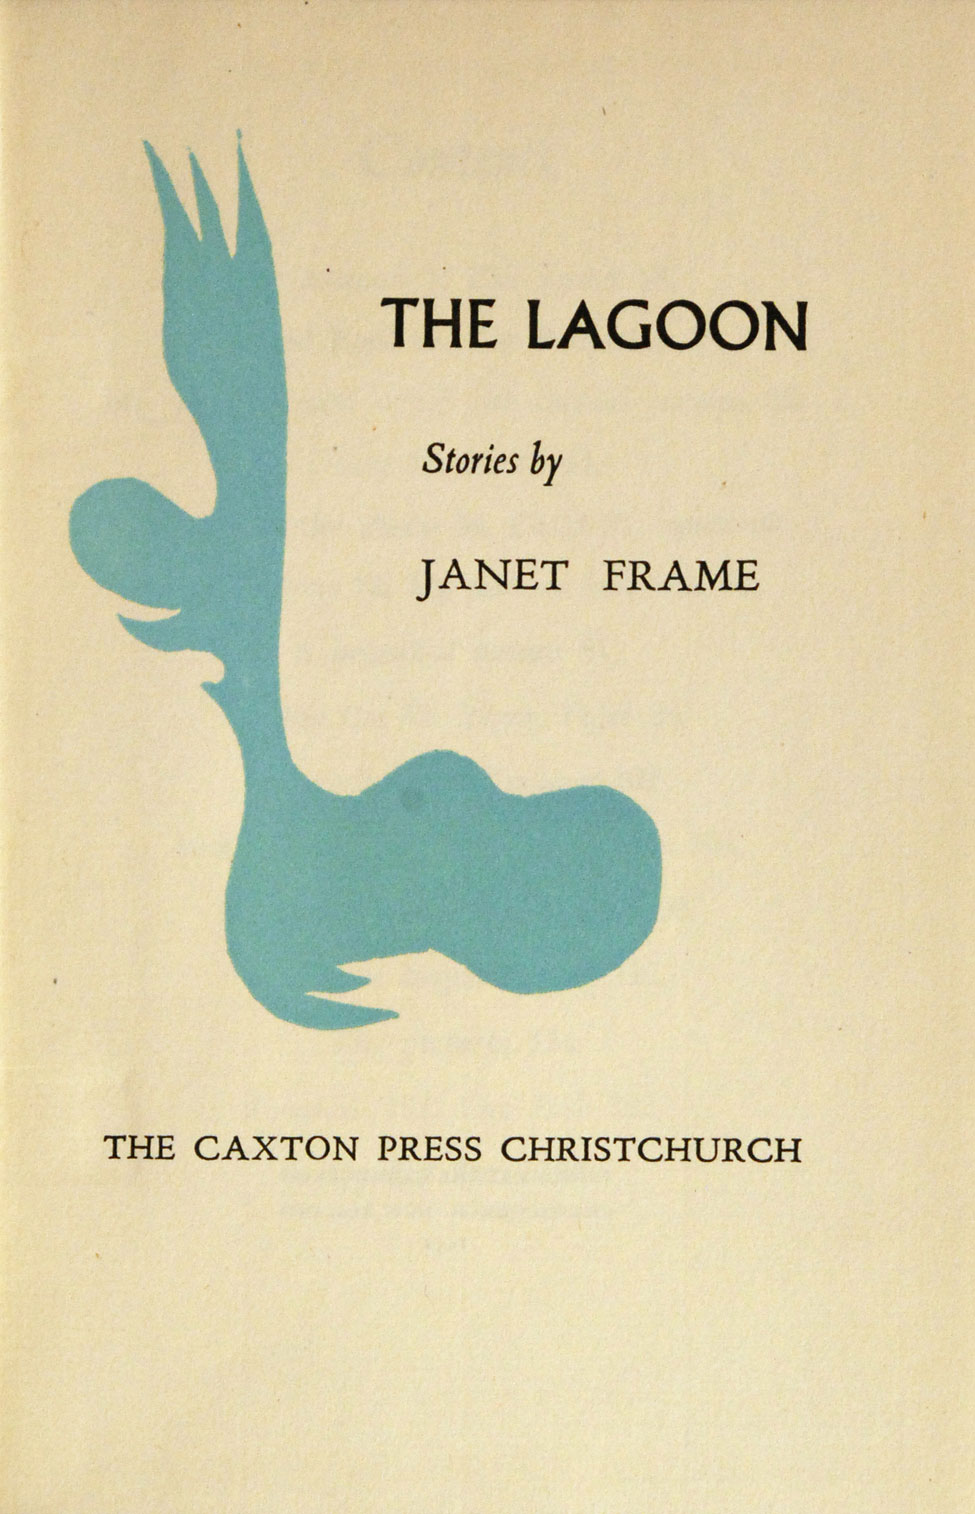 Janet Frame. The Lagoon and Other Stories.<i> Christchurch: The Caxton Press, 1951.</i>